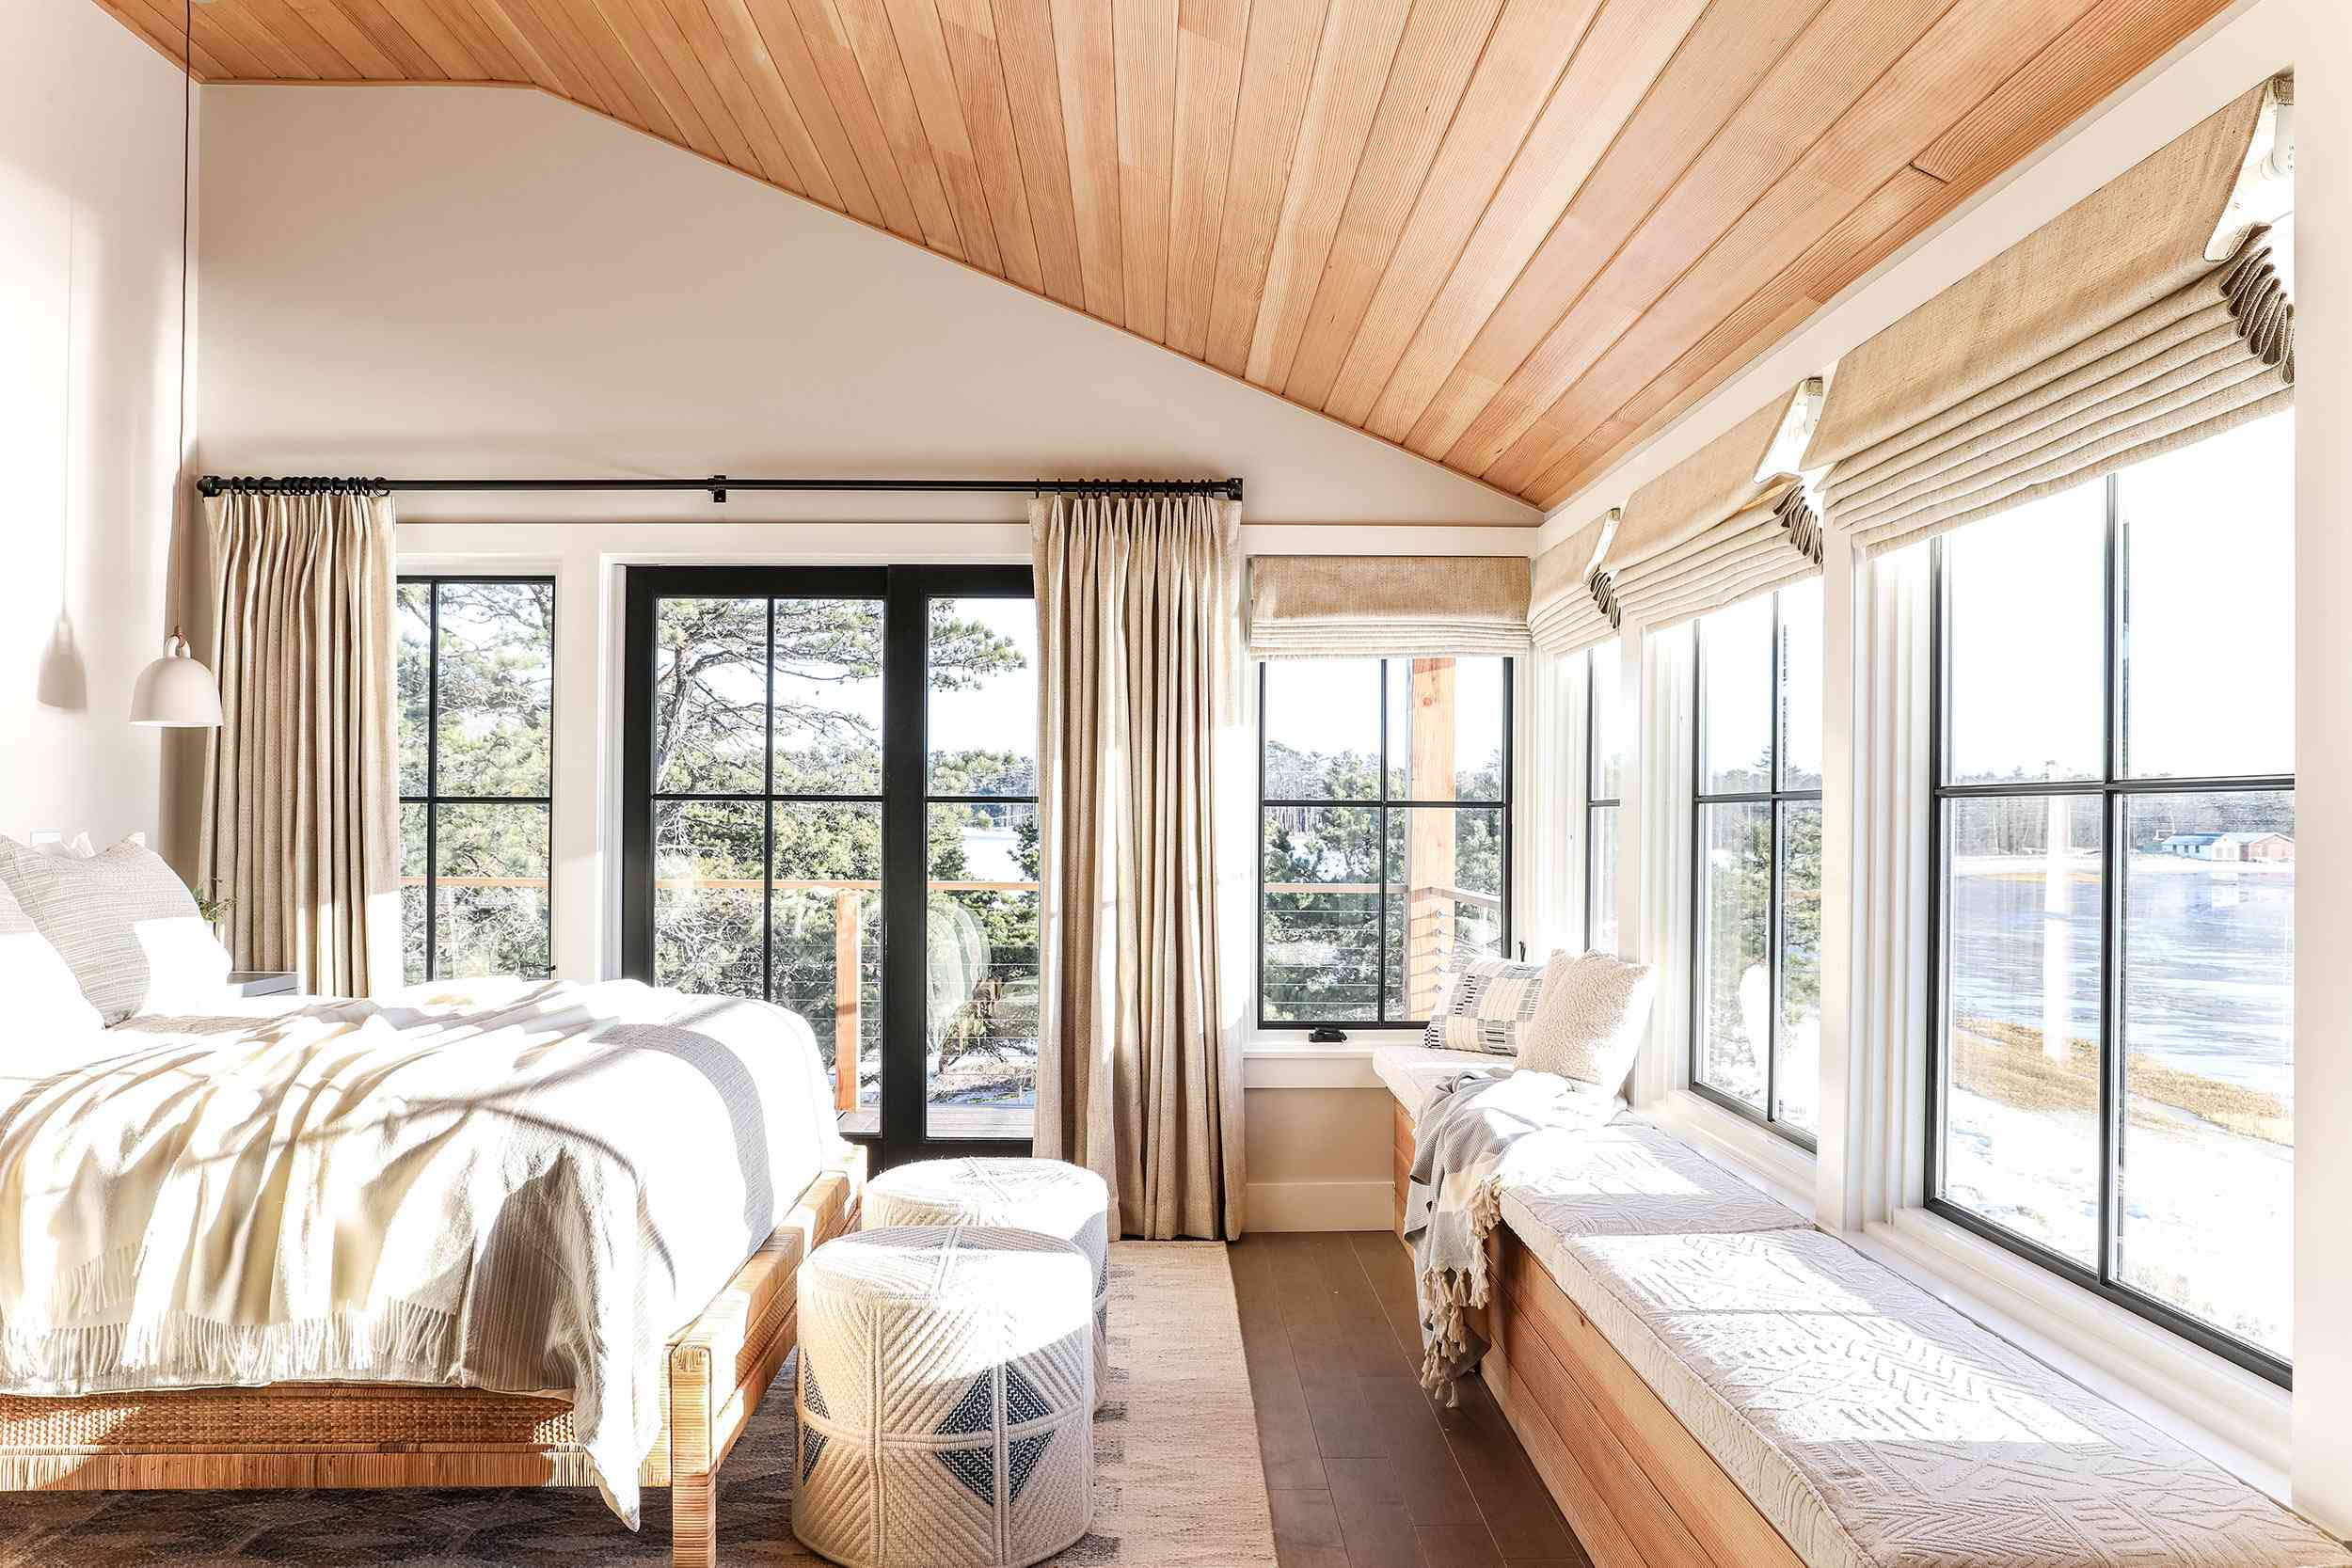 A window-filled bedroom with matching window treatments